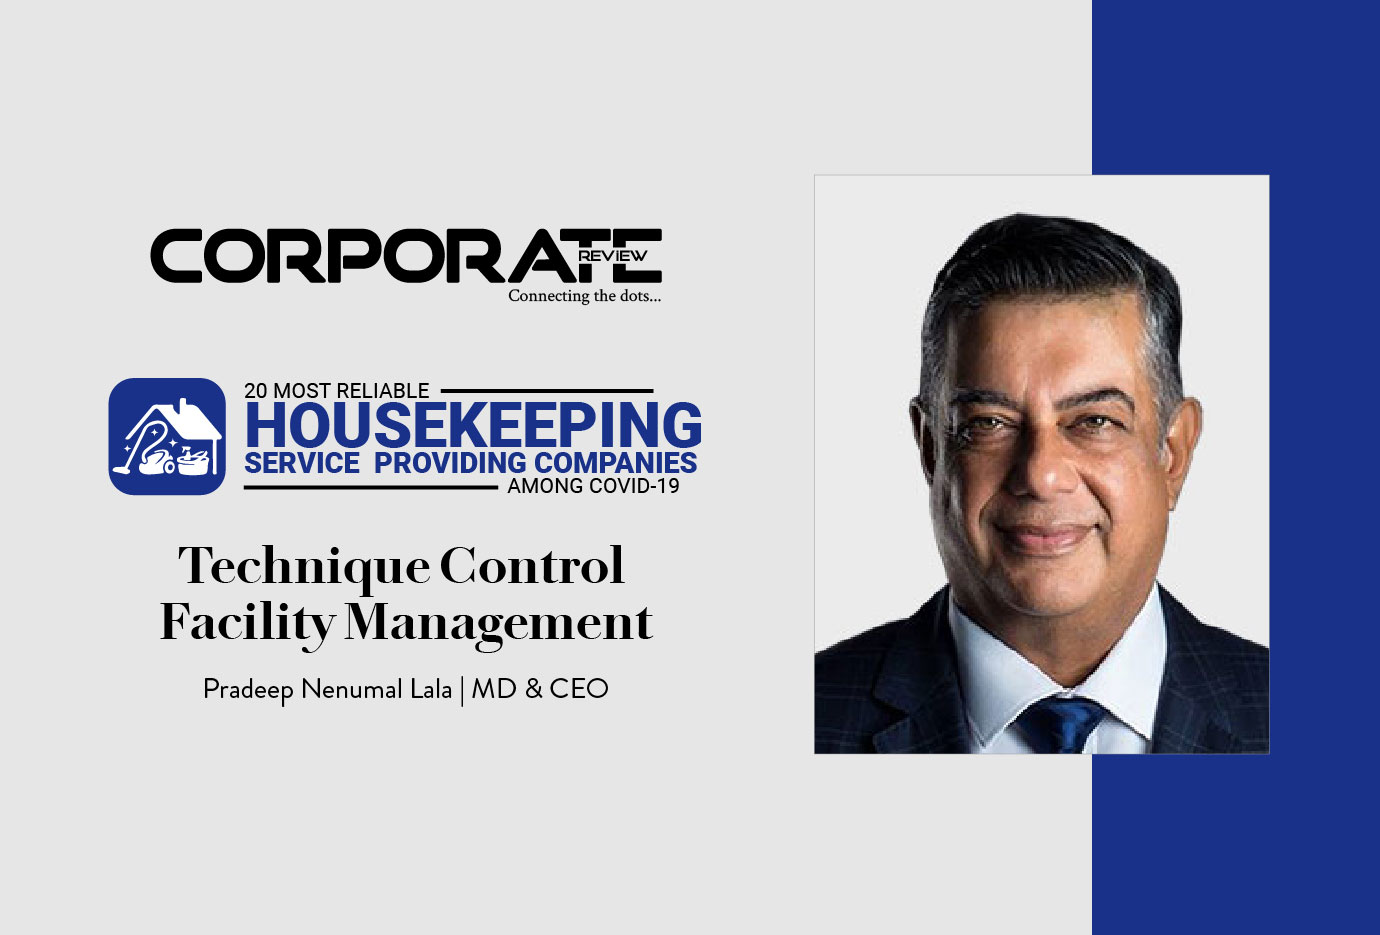 Technique Control Facility Management: Delivering the next phase of integrated facilities management services for the 'new normal'